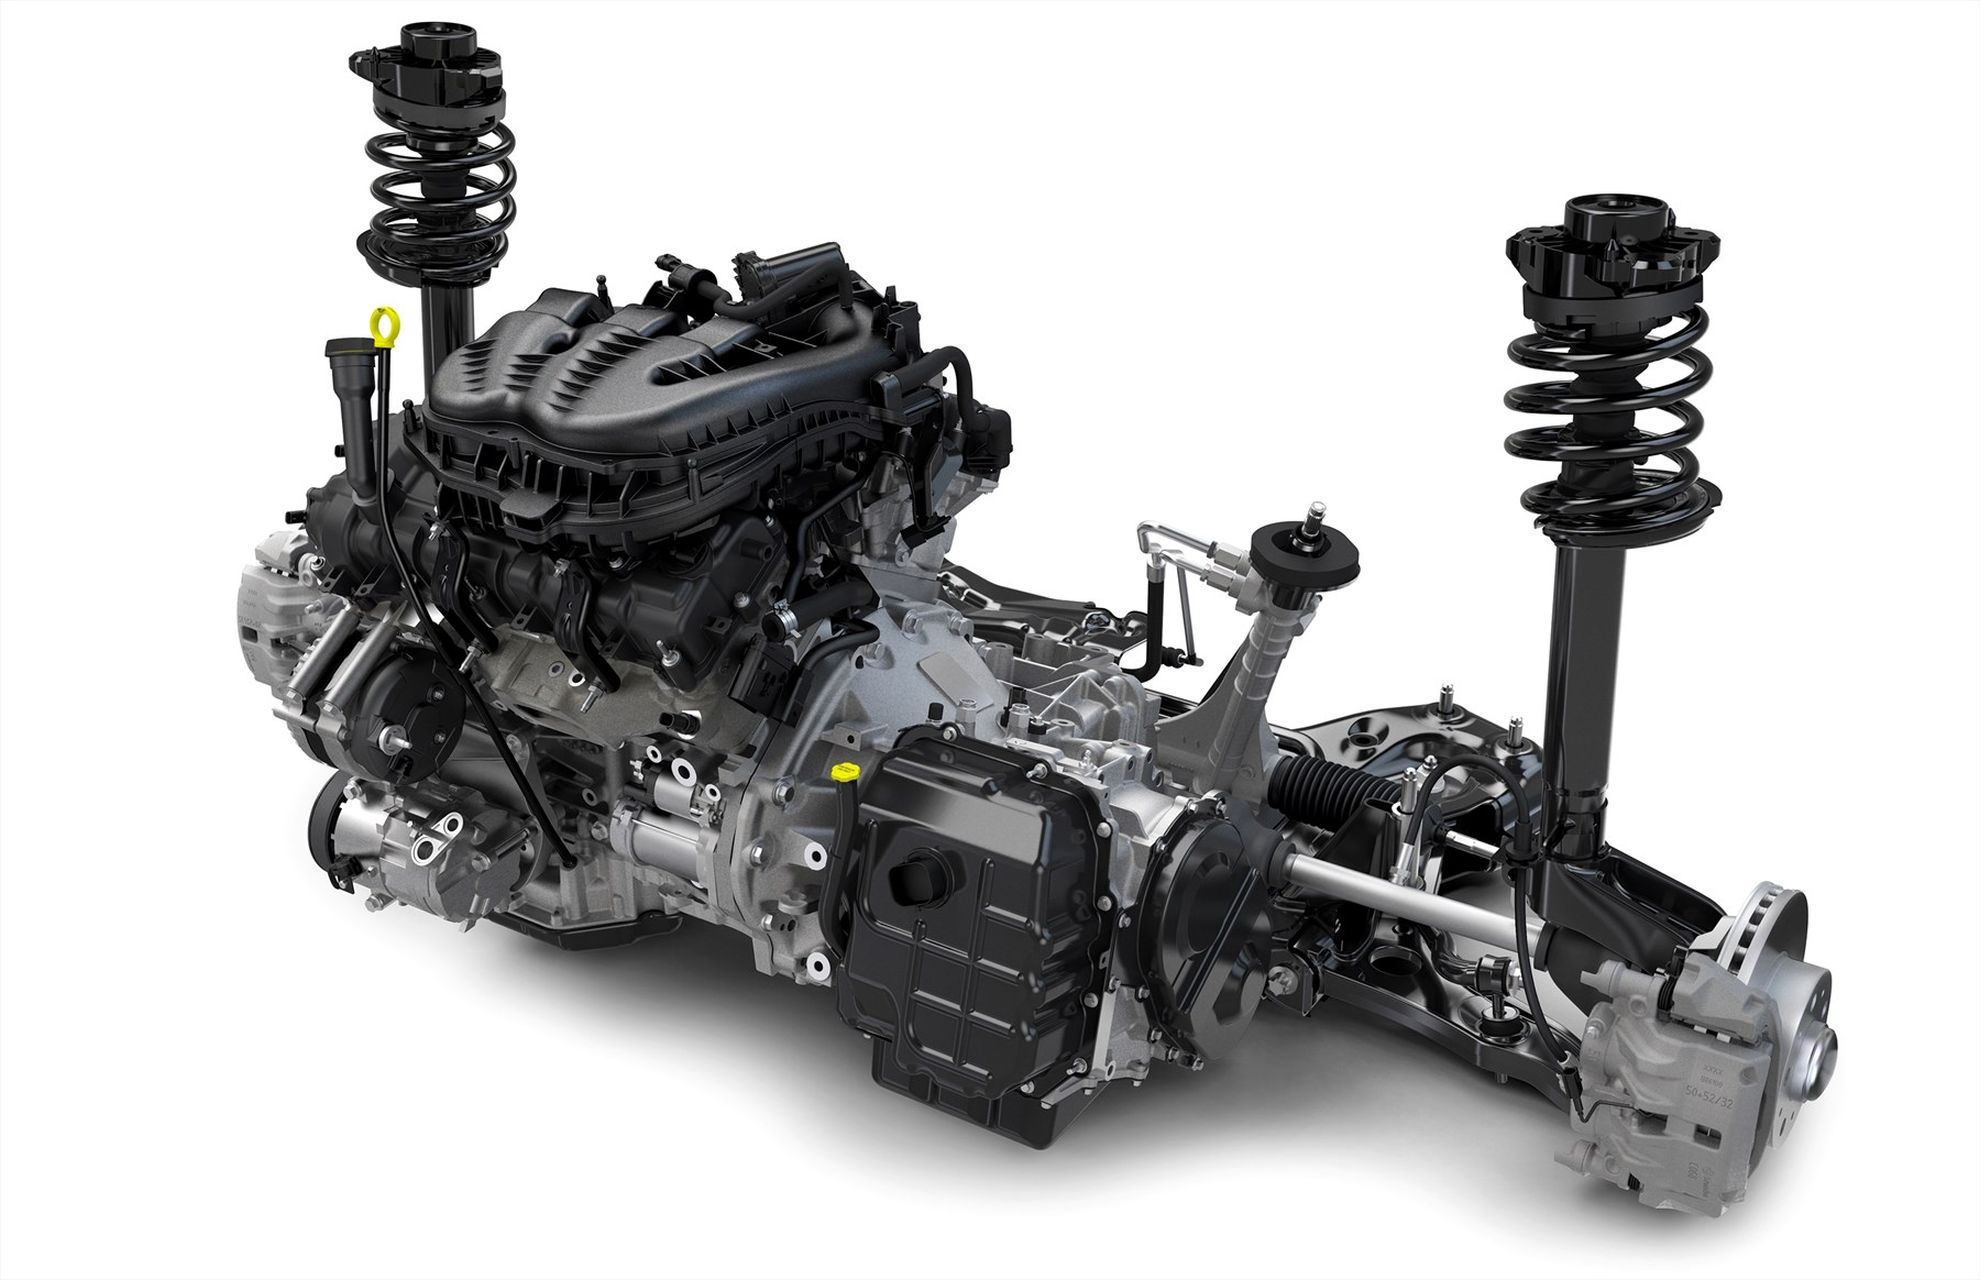 isuzu 3 2 v6 engine  isuzu  free engine image for user